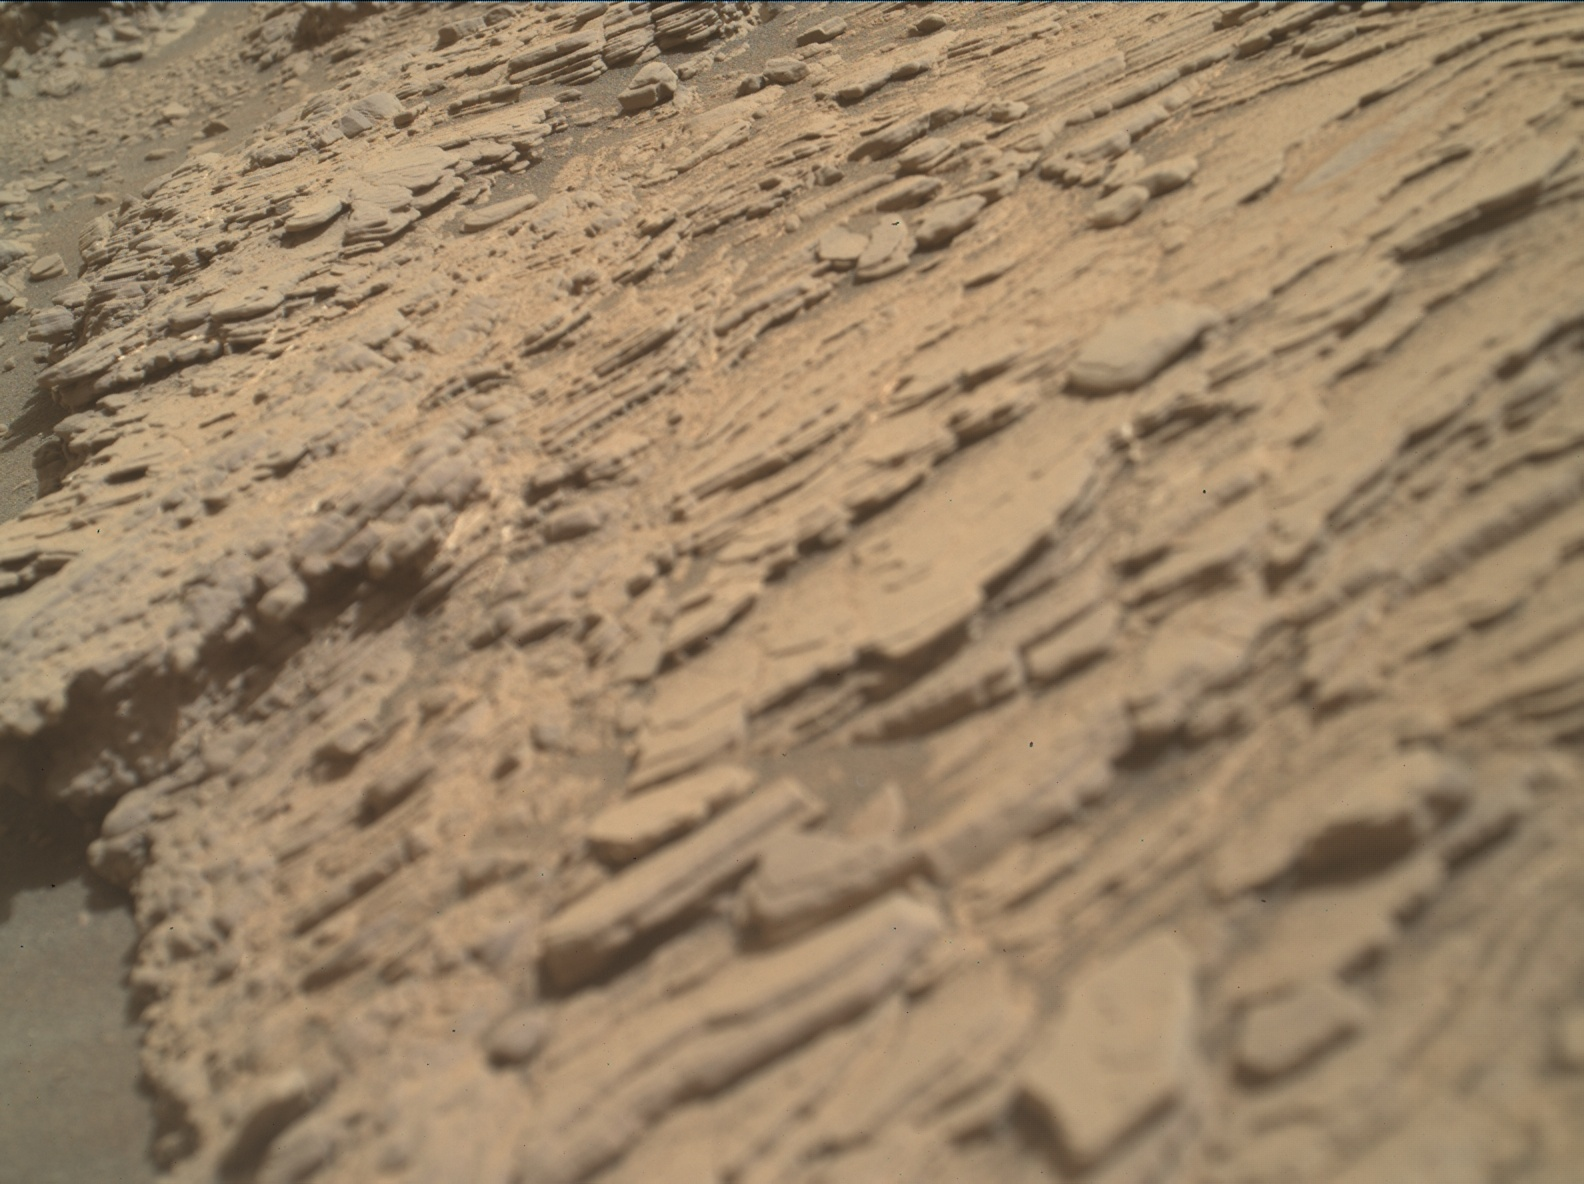 Nasa's Mars rover Curiosity acquired this image using its Mars Hand Lens Imager (MAHLI) on Sol 2465